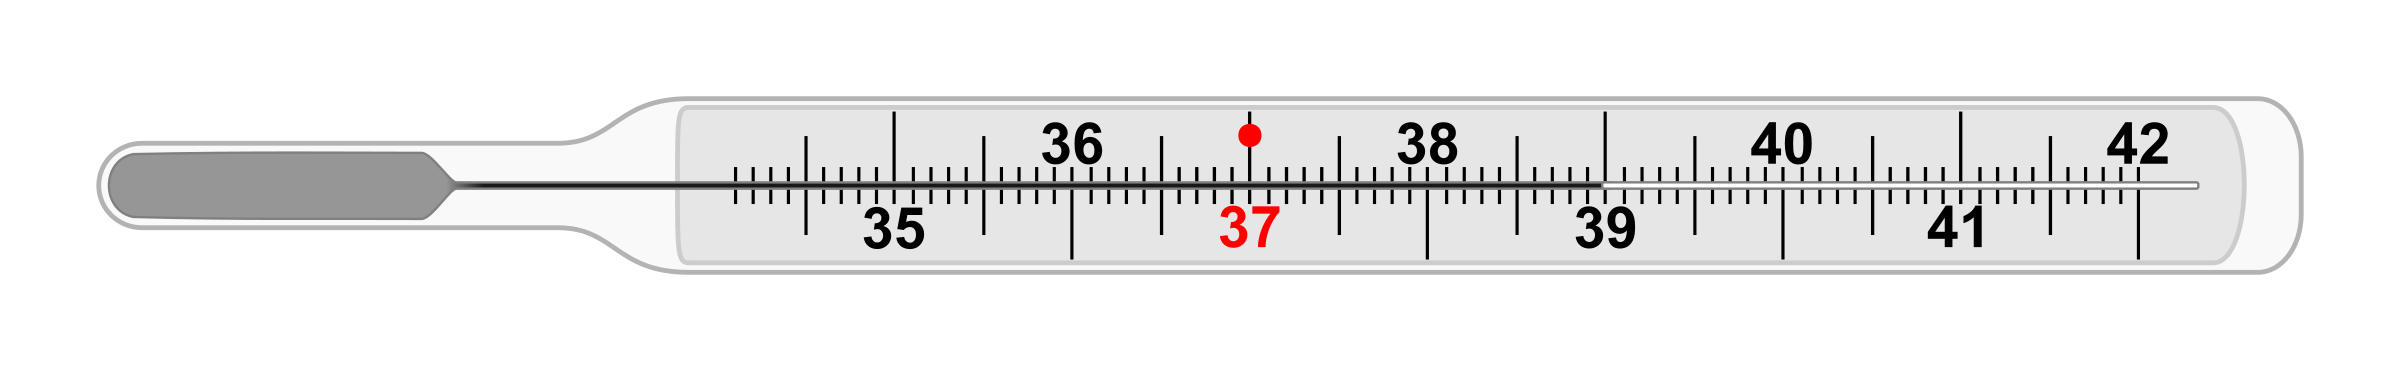 Thermometer clinical thermometer